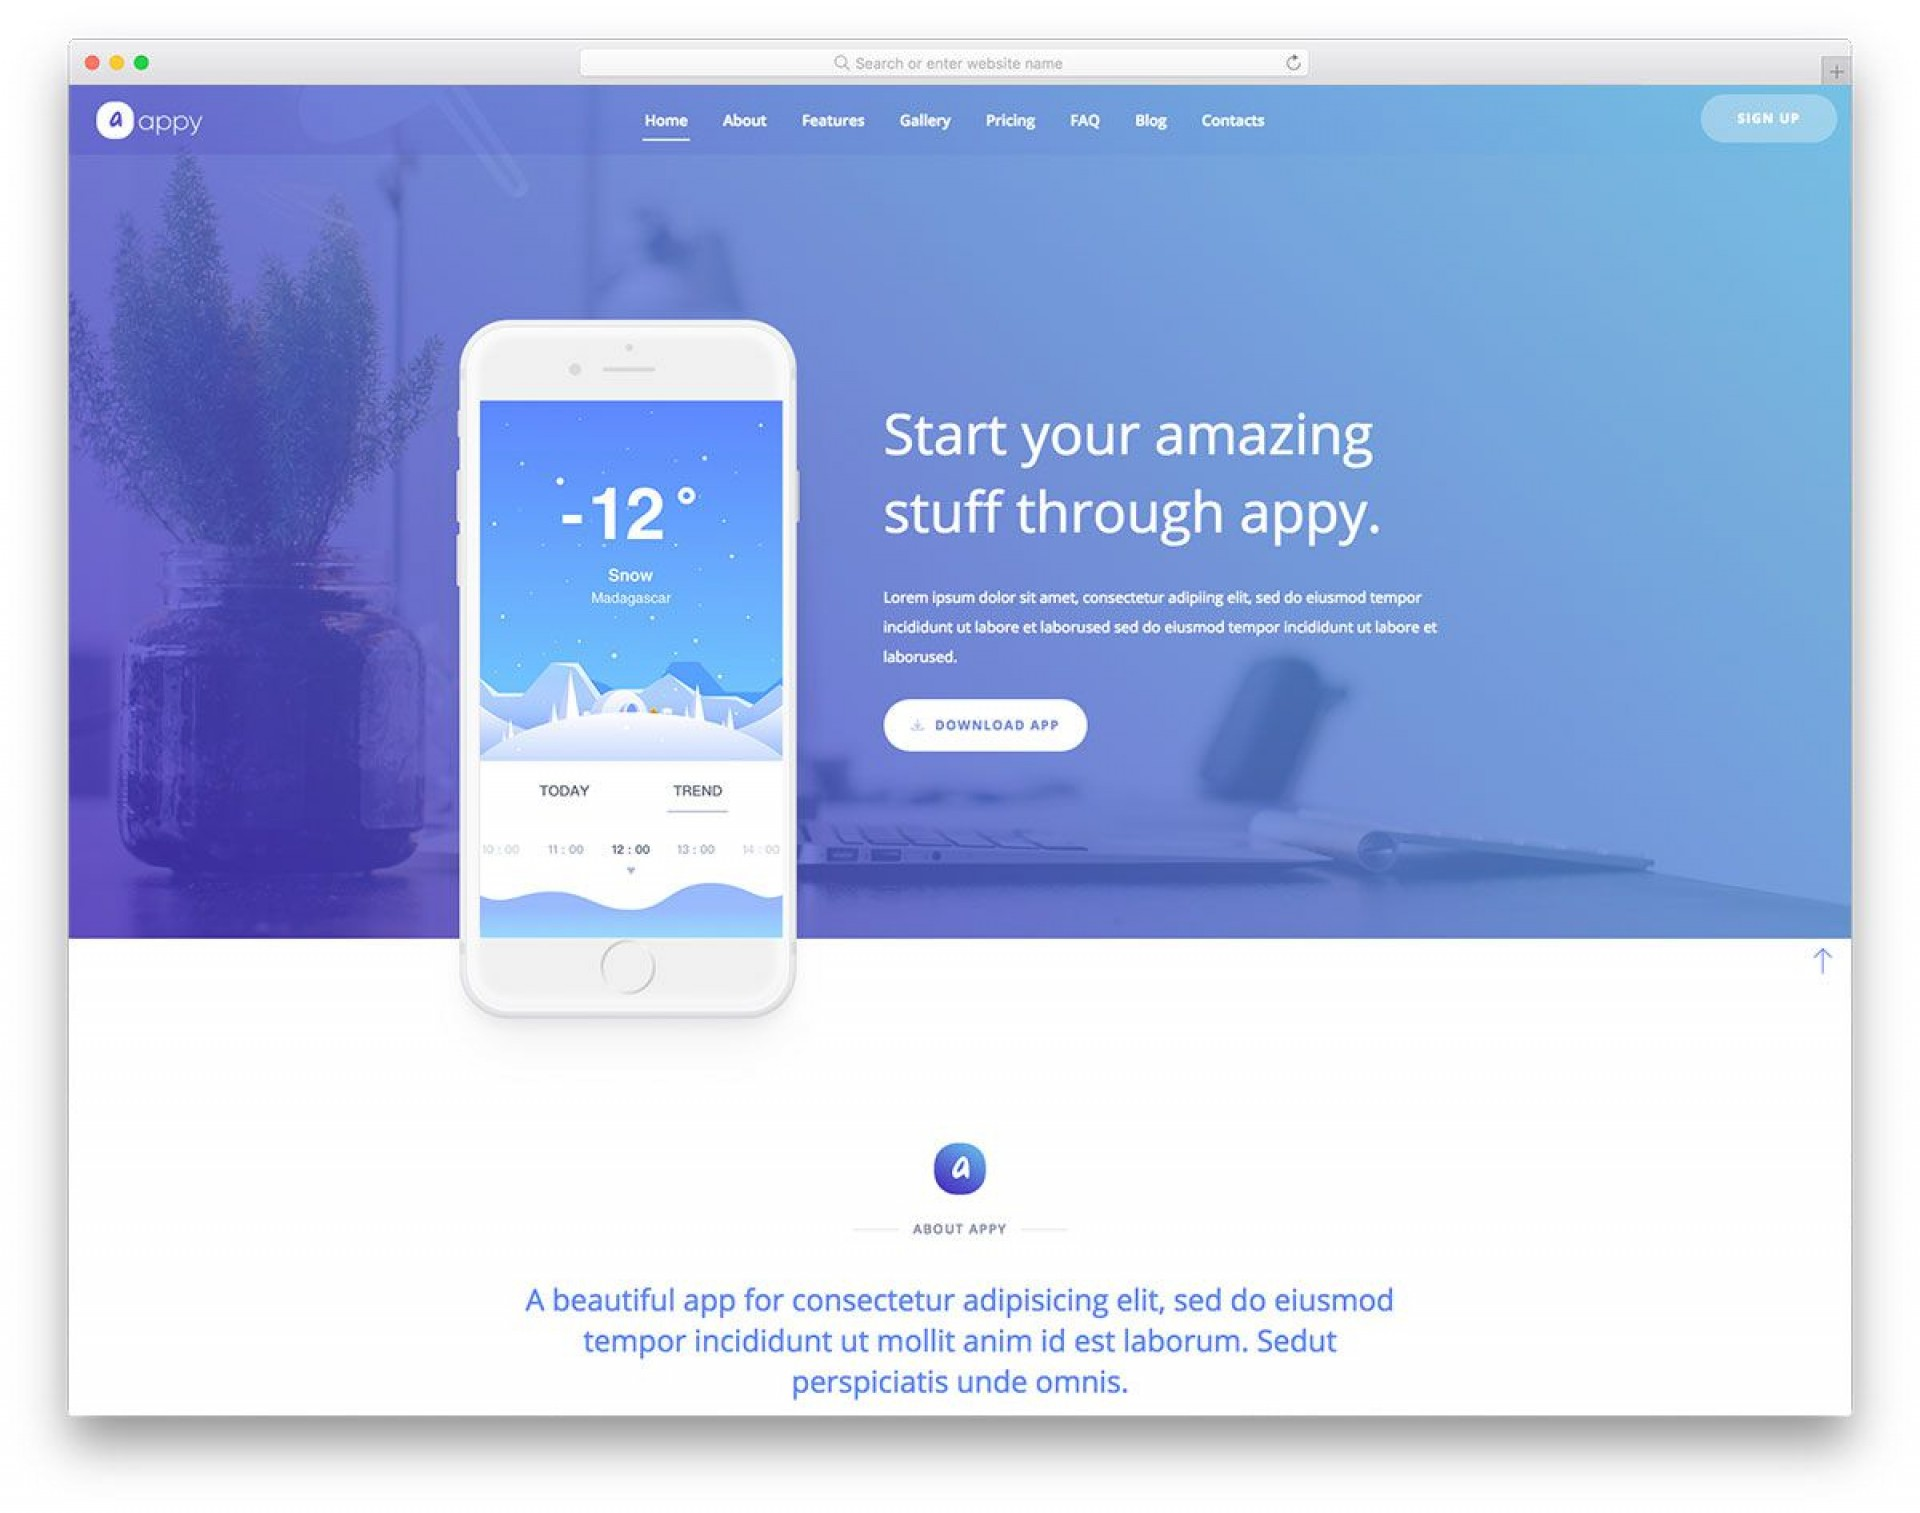 003 Exceptional Html Landing Page Template Free Image  Responsive Download Simple Best1920